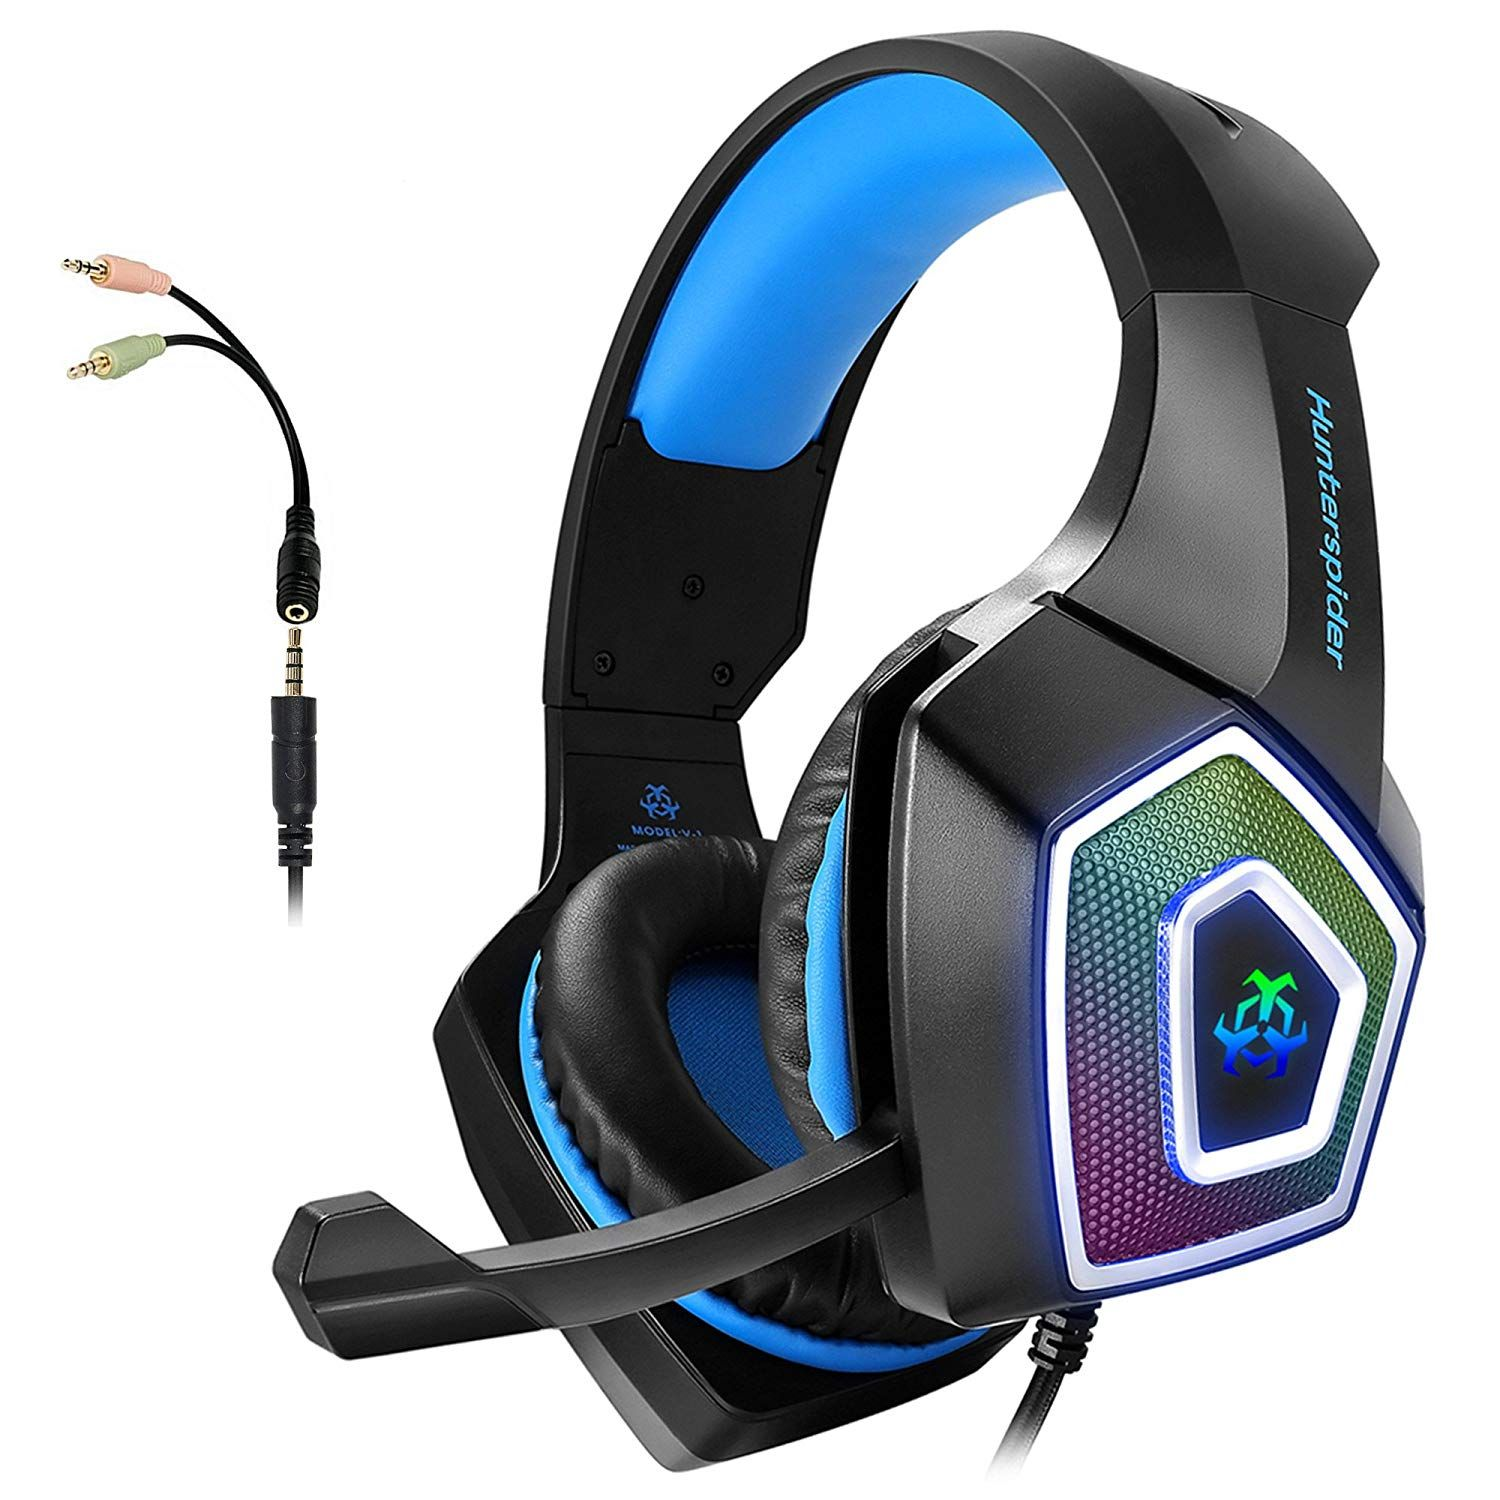 Gaming Headset With Mic For Xbox One Ps4 Pc Nintendo Switch Tablet Smartphone Headphones Stereo Gaming Headset Gaming Headphones Headphones For Ps4